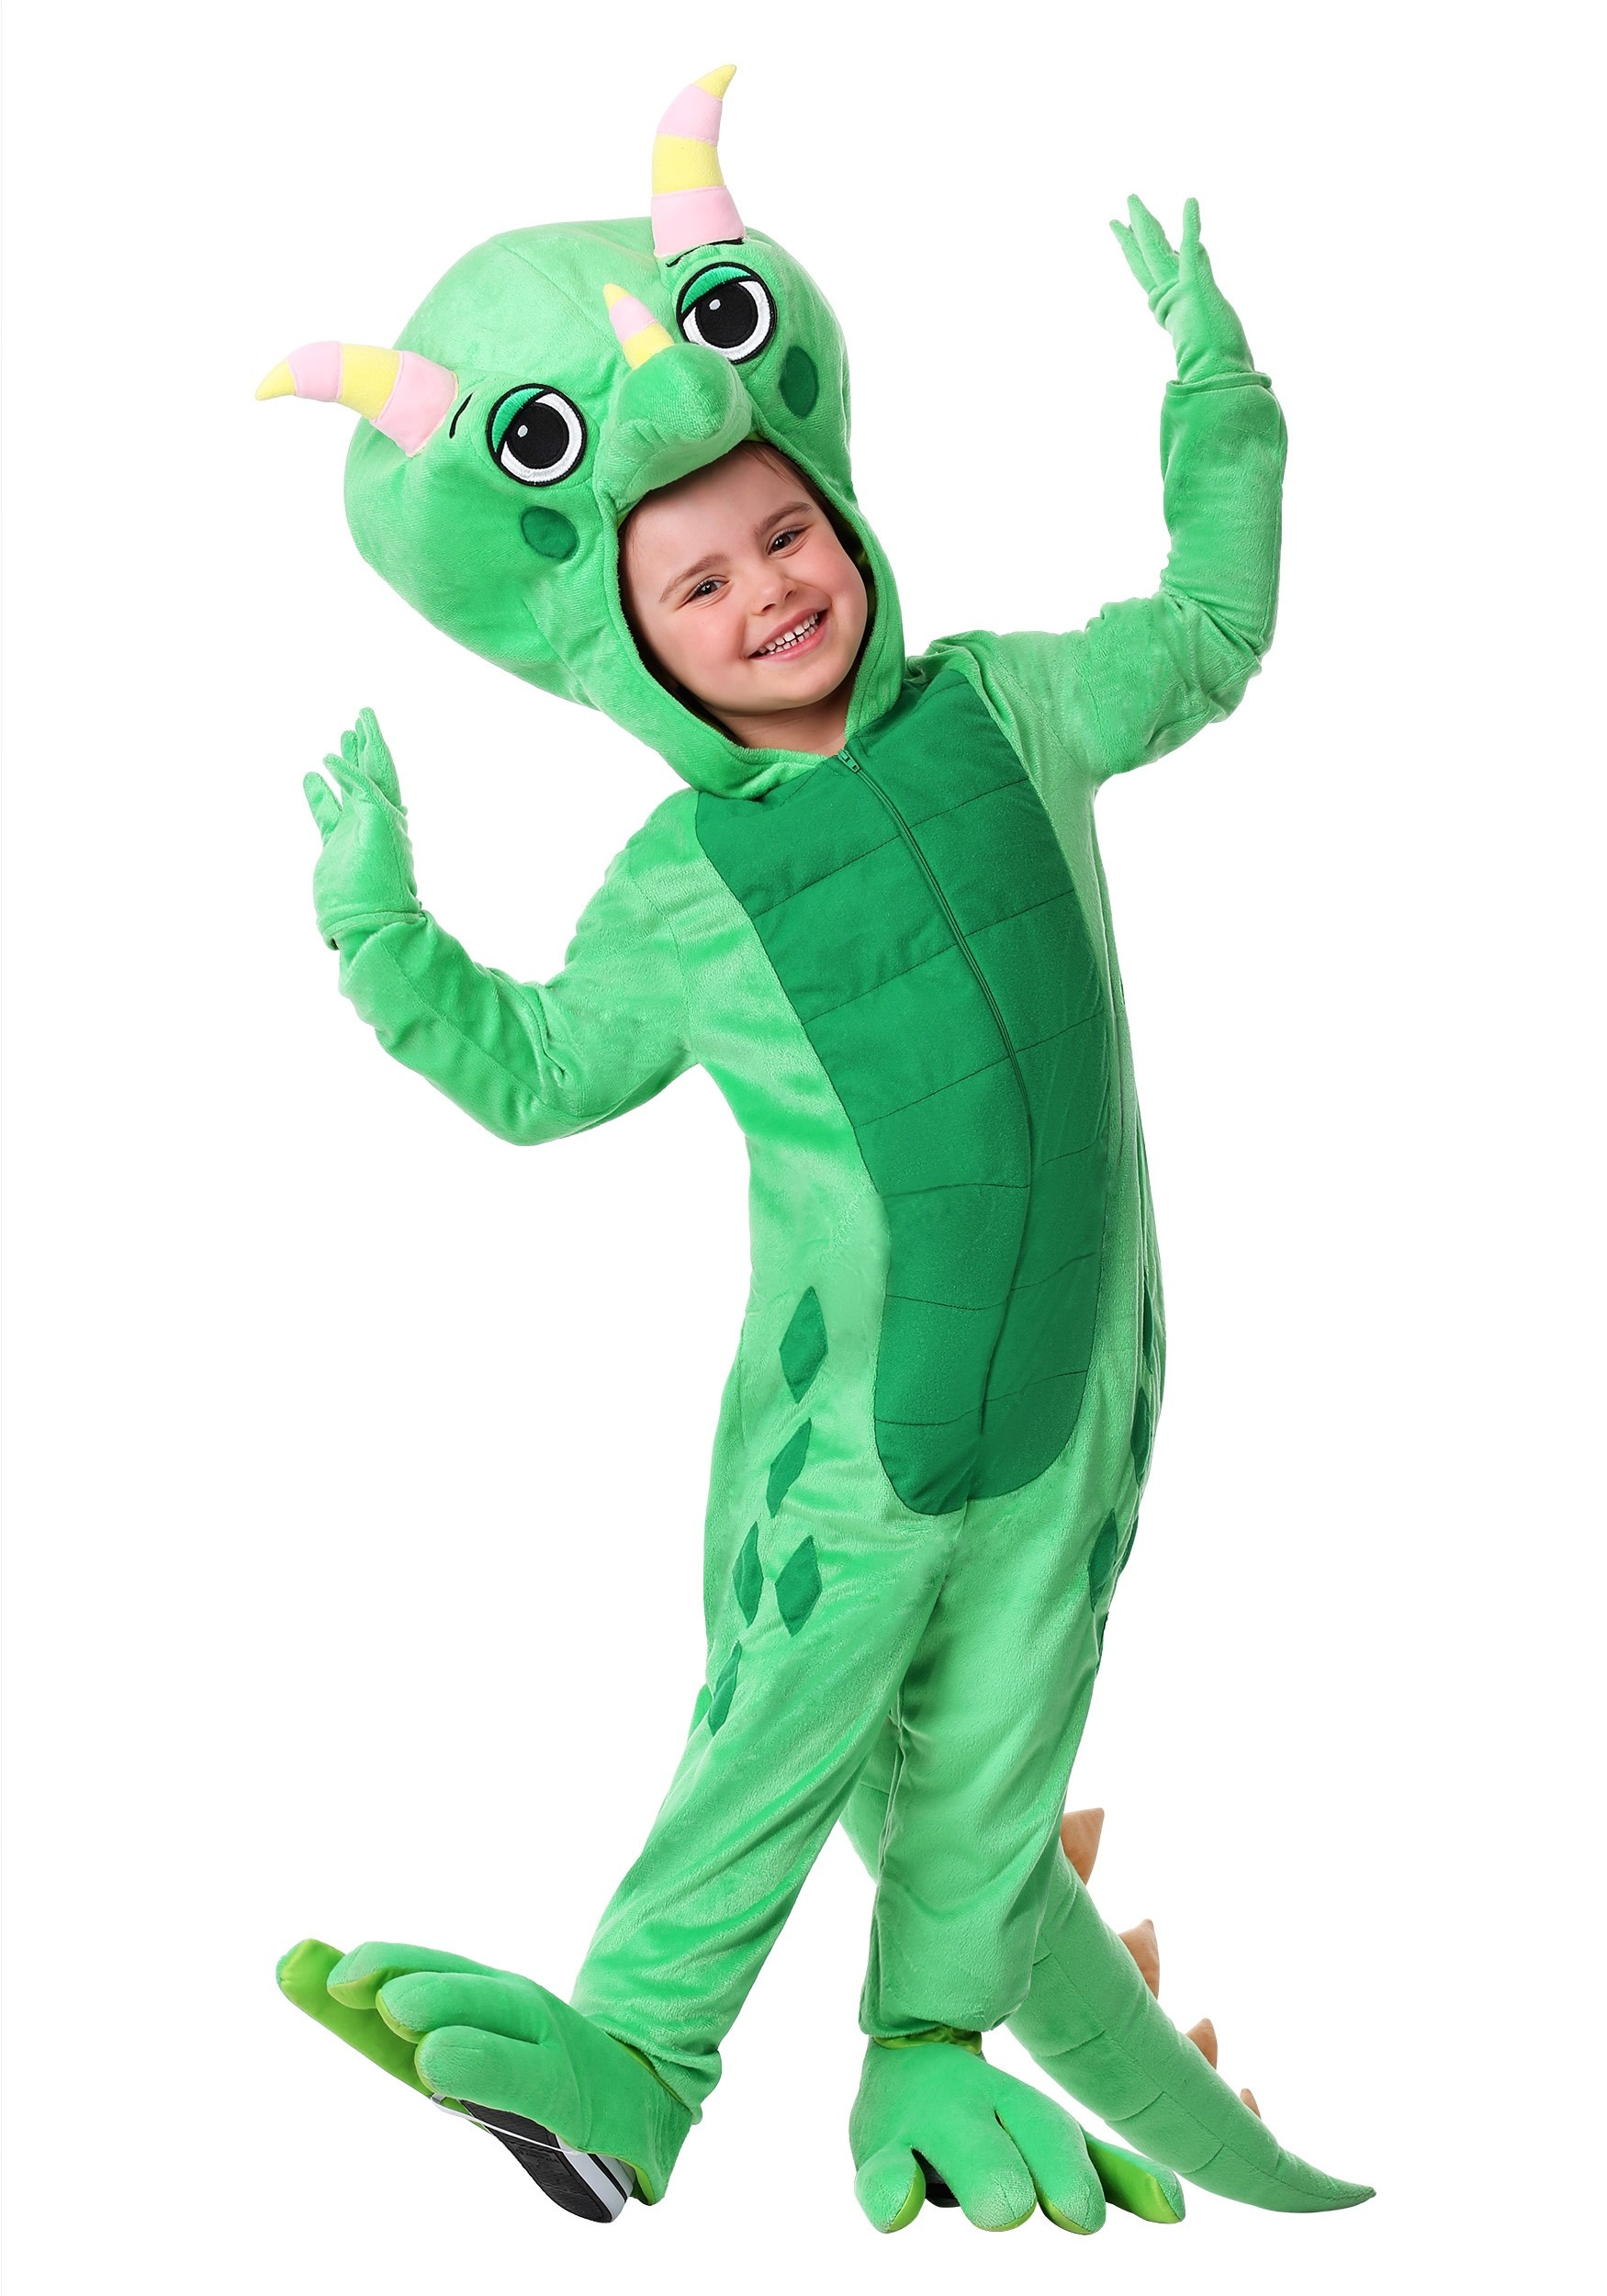 Children's Magic School Bus Liz Costume | Lizard Costume